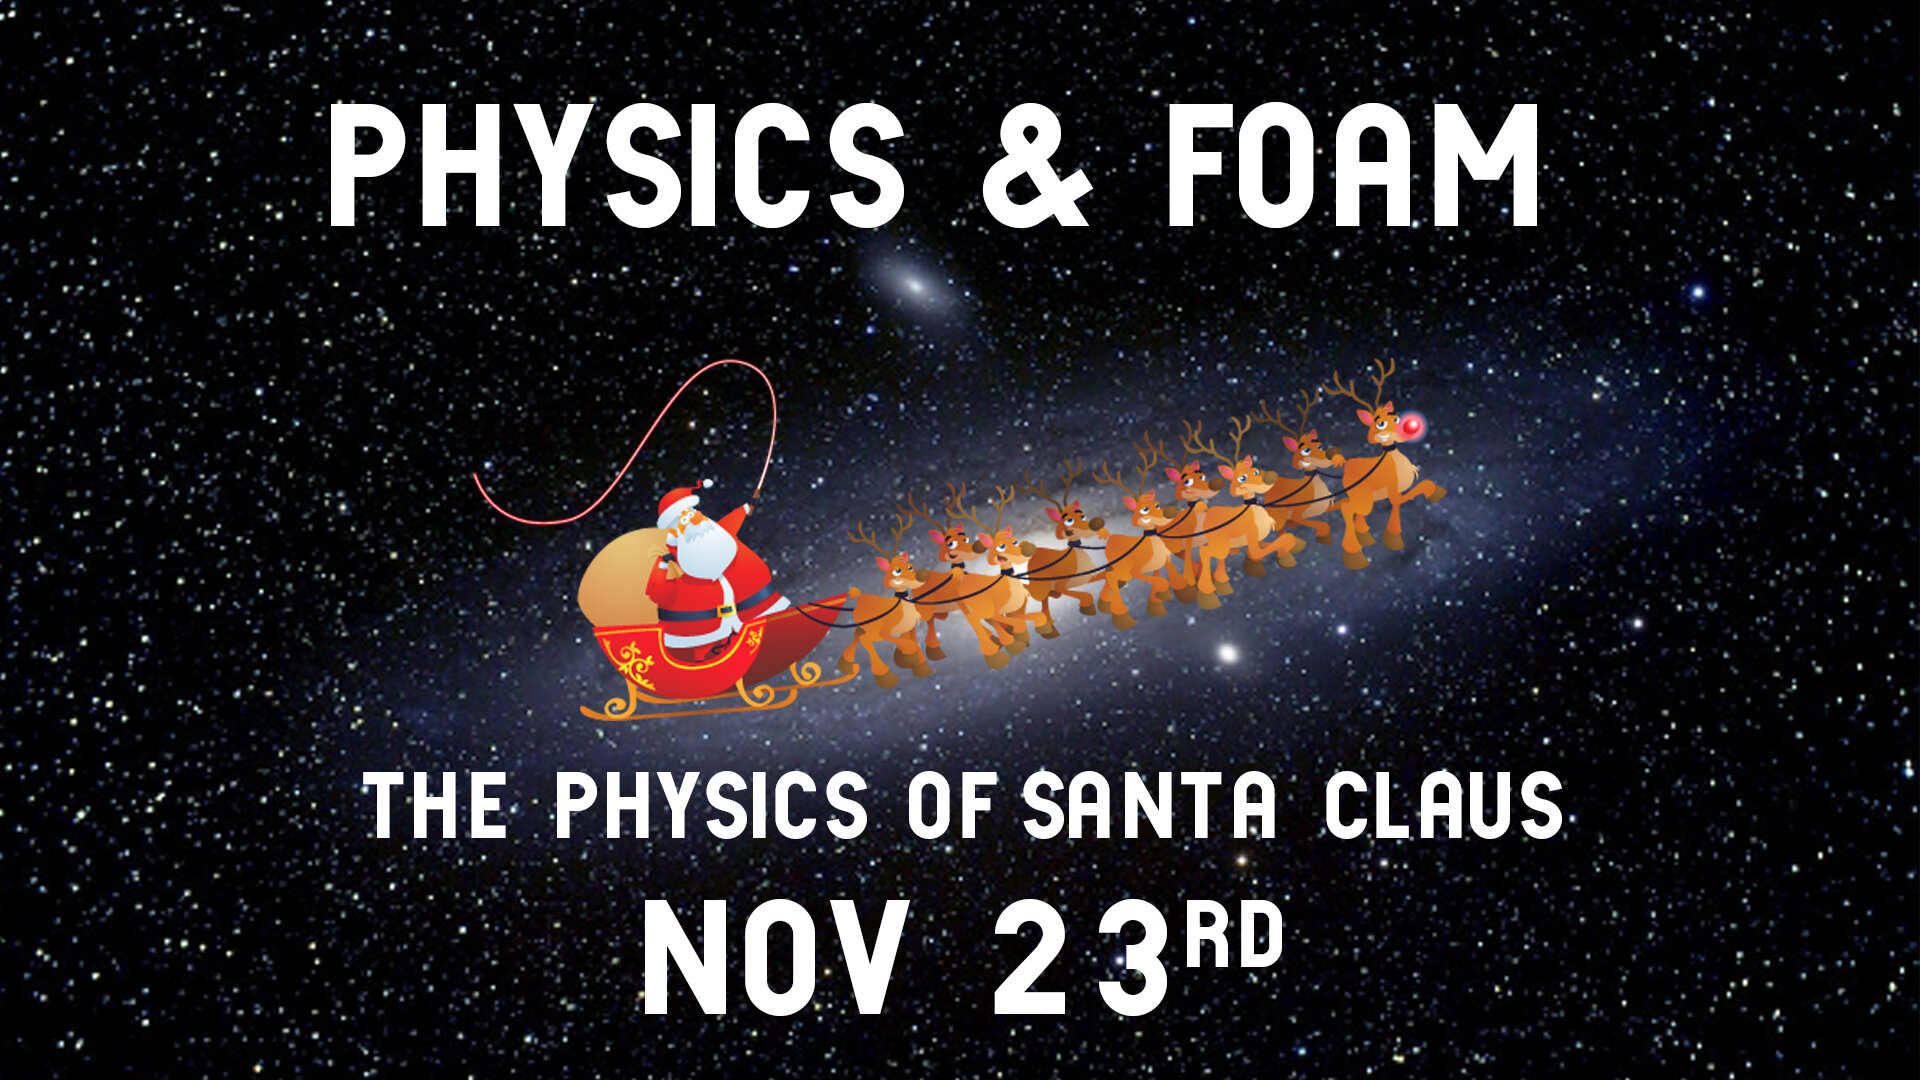 PHYSICS & FOAM 11-23.jpg